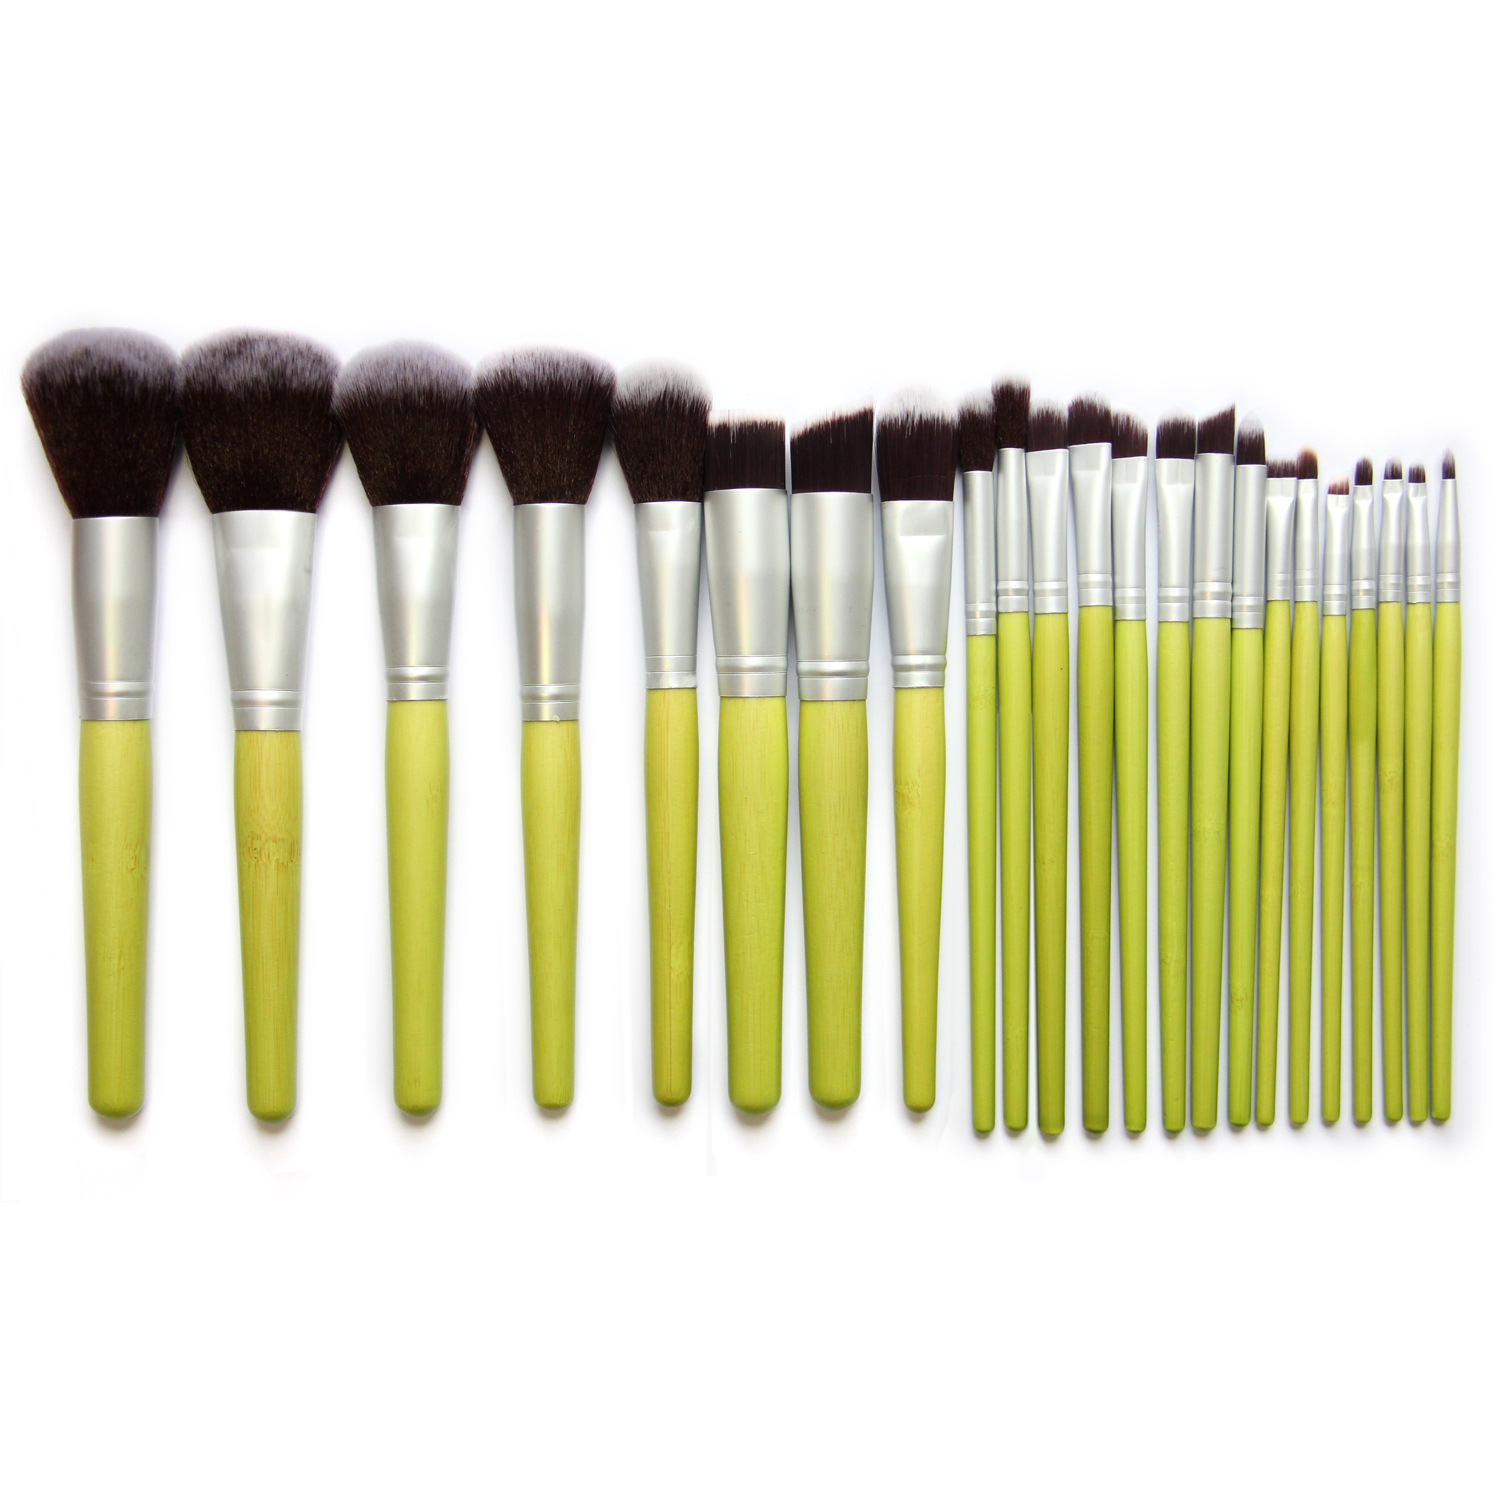 Hot 23Pcs/Set Pro Makeup Brushes For Powder Foundation Eyeshadow Brush Lip Pincel Maquiagem